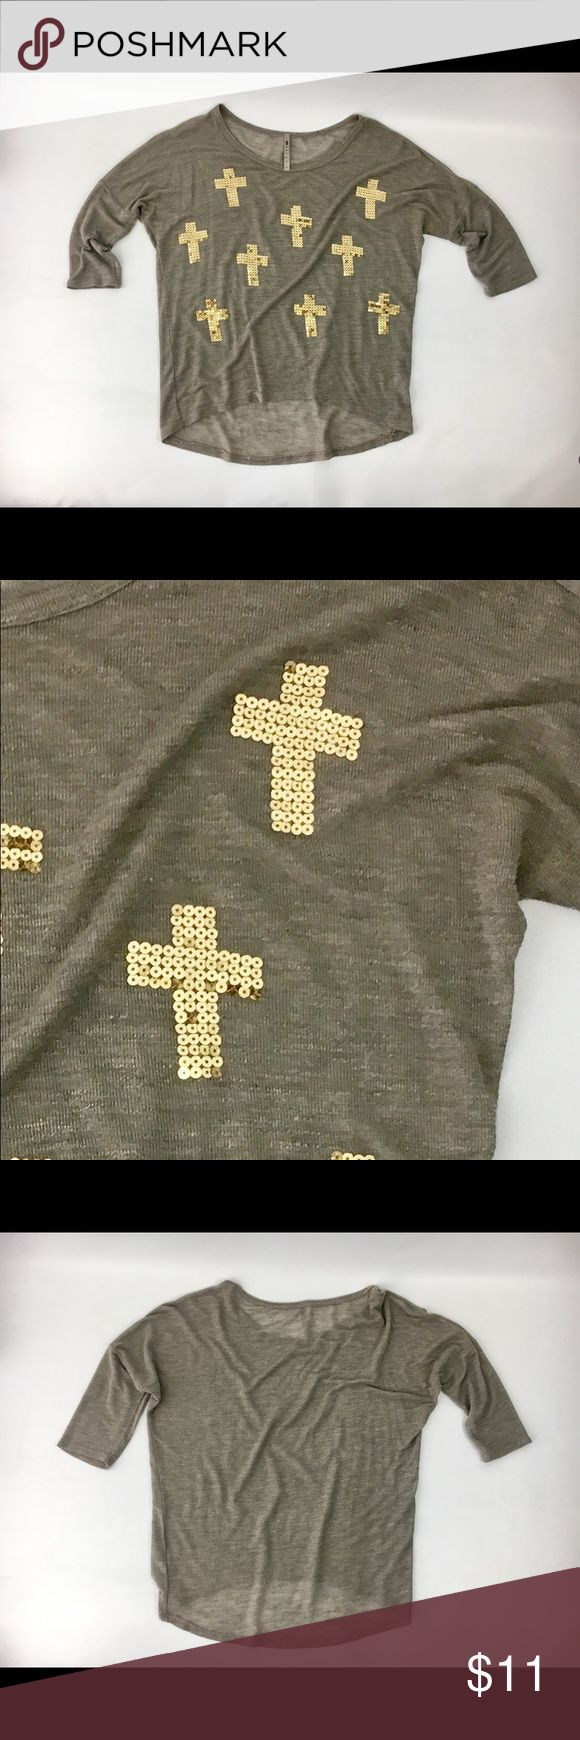 Labenga Gold Sequin 3/4 Sleeve Slouchy Top Med Stand out in the crowd in this super cute labenga top. Gold sequined crosses and 3/4 sleeves. See pix for measurements. 👍🏼🤓 Labenga Tops Blouses